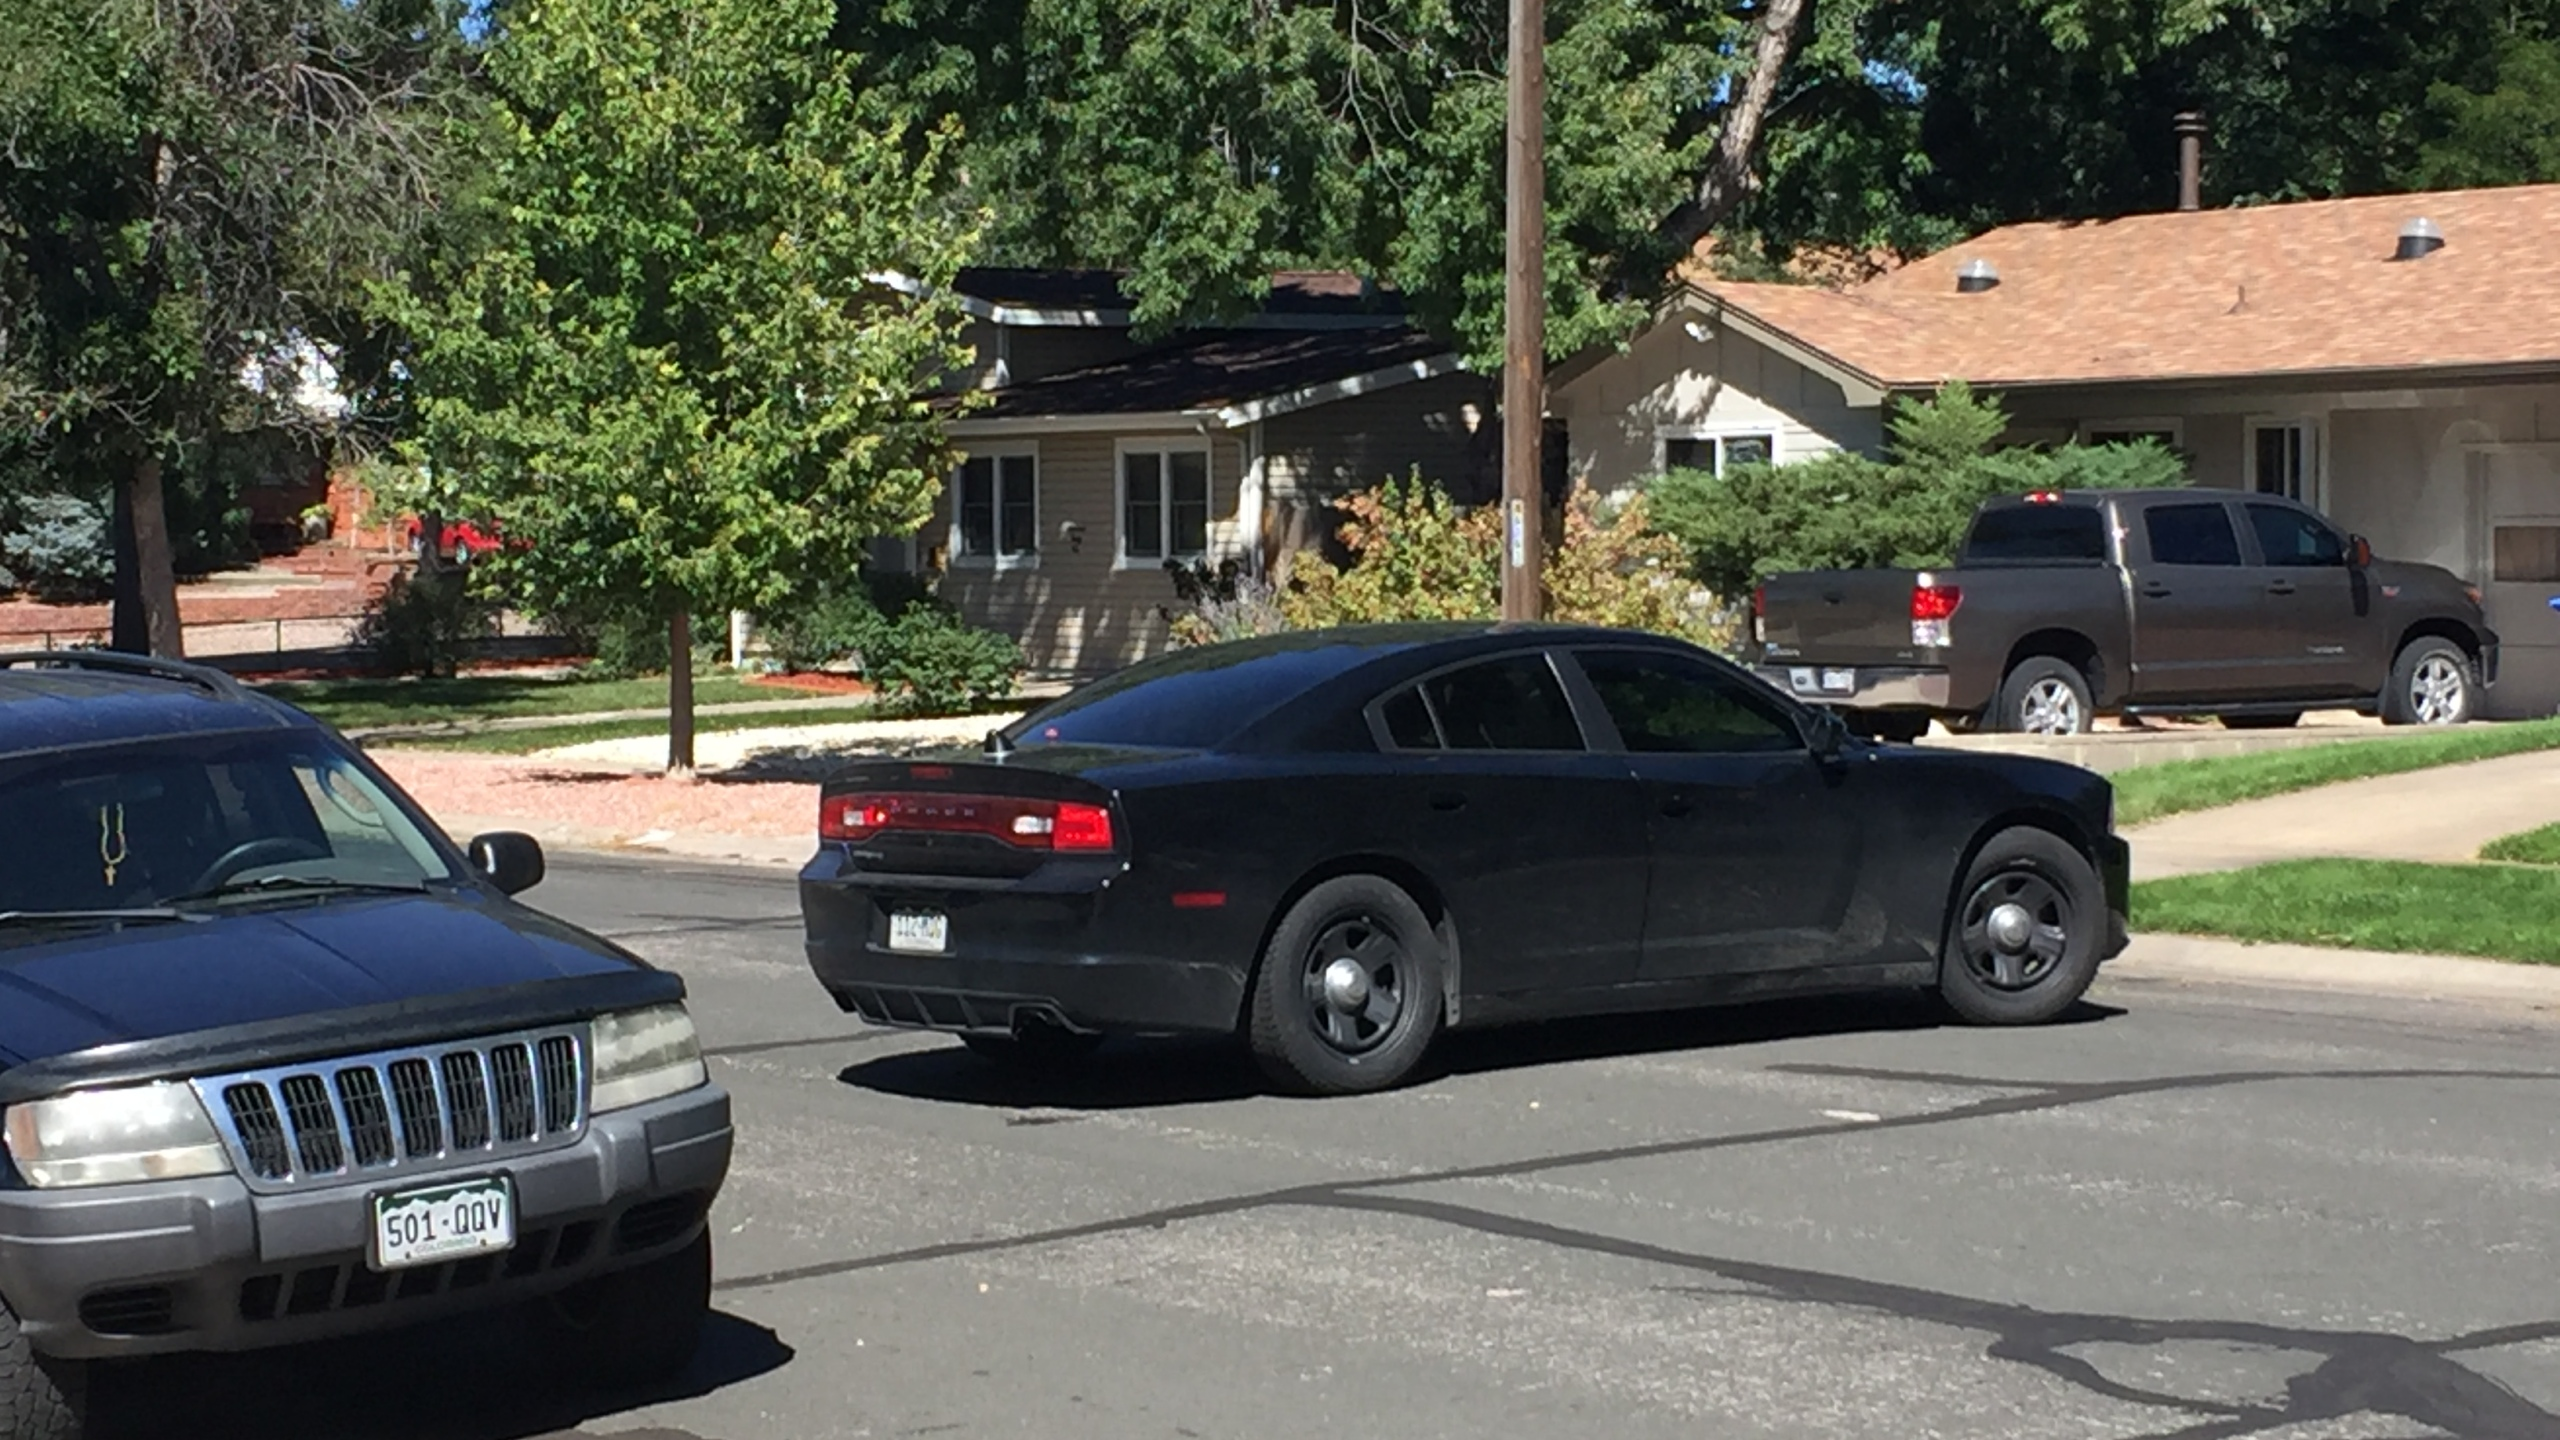 A possible explosive device was found in a home on Wynkoop Drive in Colorado Springs Friday afternoon. _ Mike Duran - FOX21 News_313713